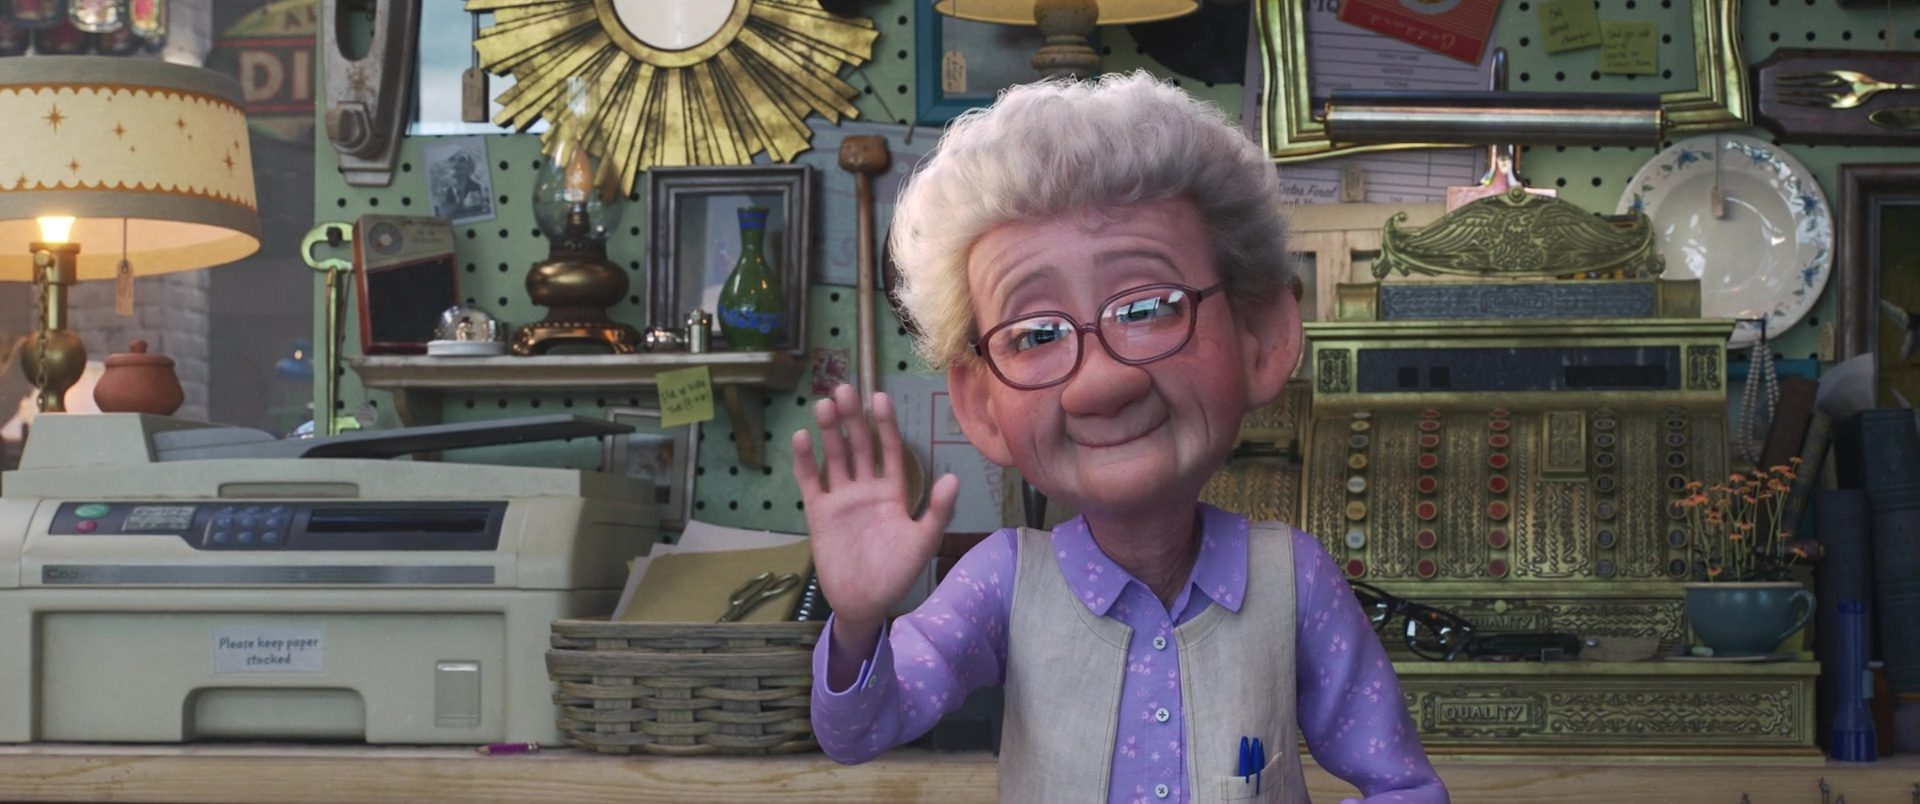 margaret-personnage-toy-story-4-01